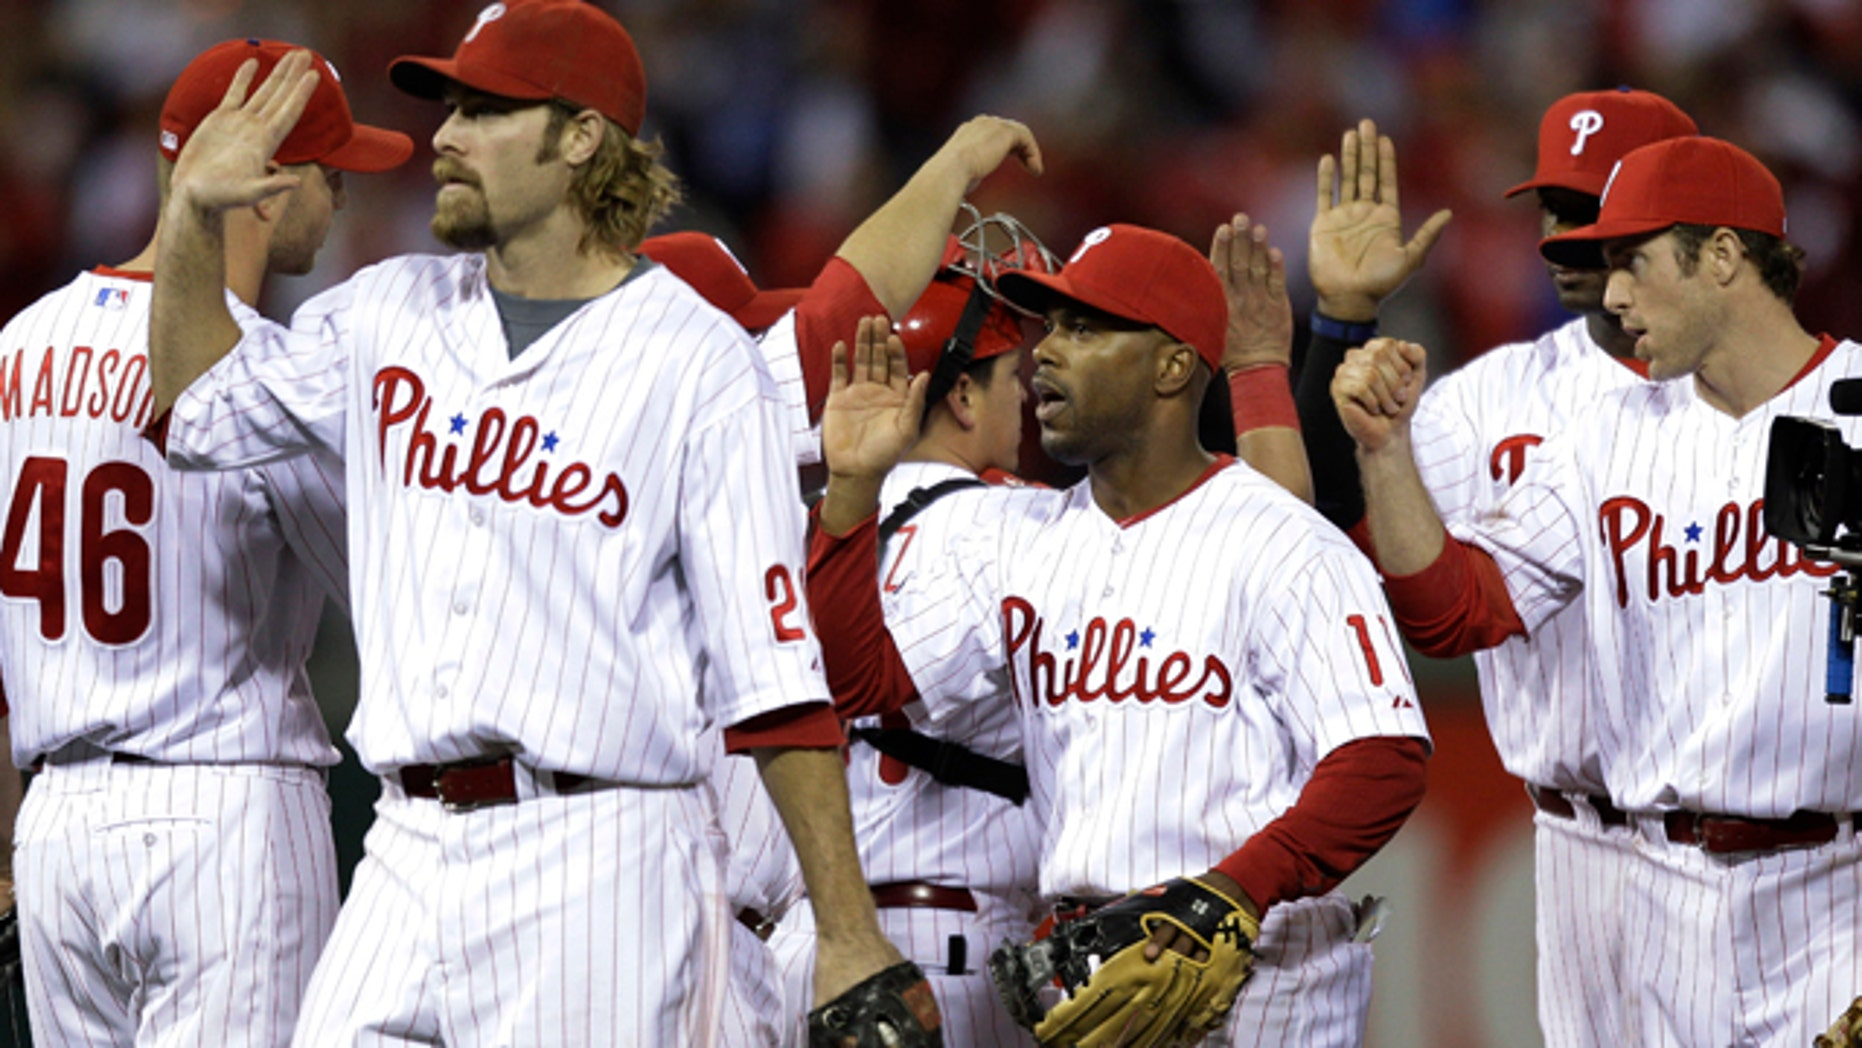 Oct. 17: The Philadelphia Phillies celebrate after winning Game 2 of the NLCS over the San Francisco Giants.